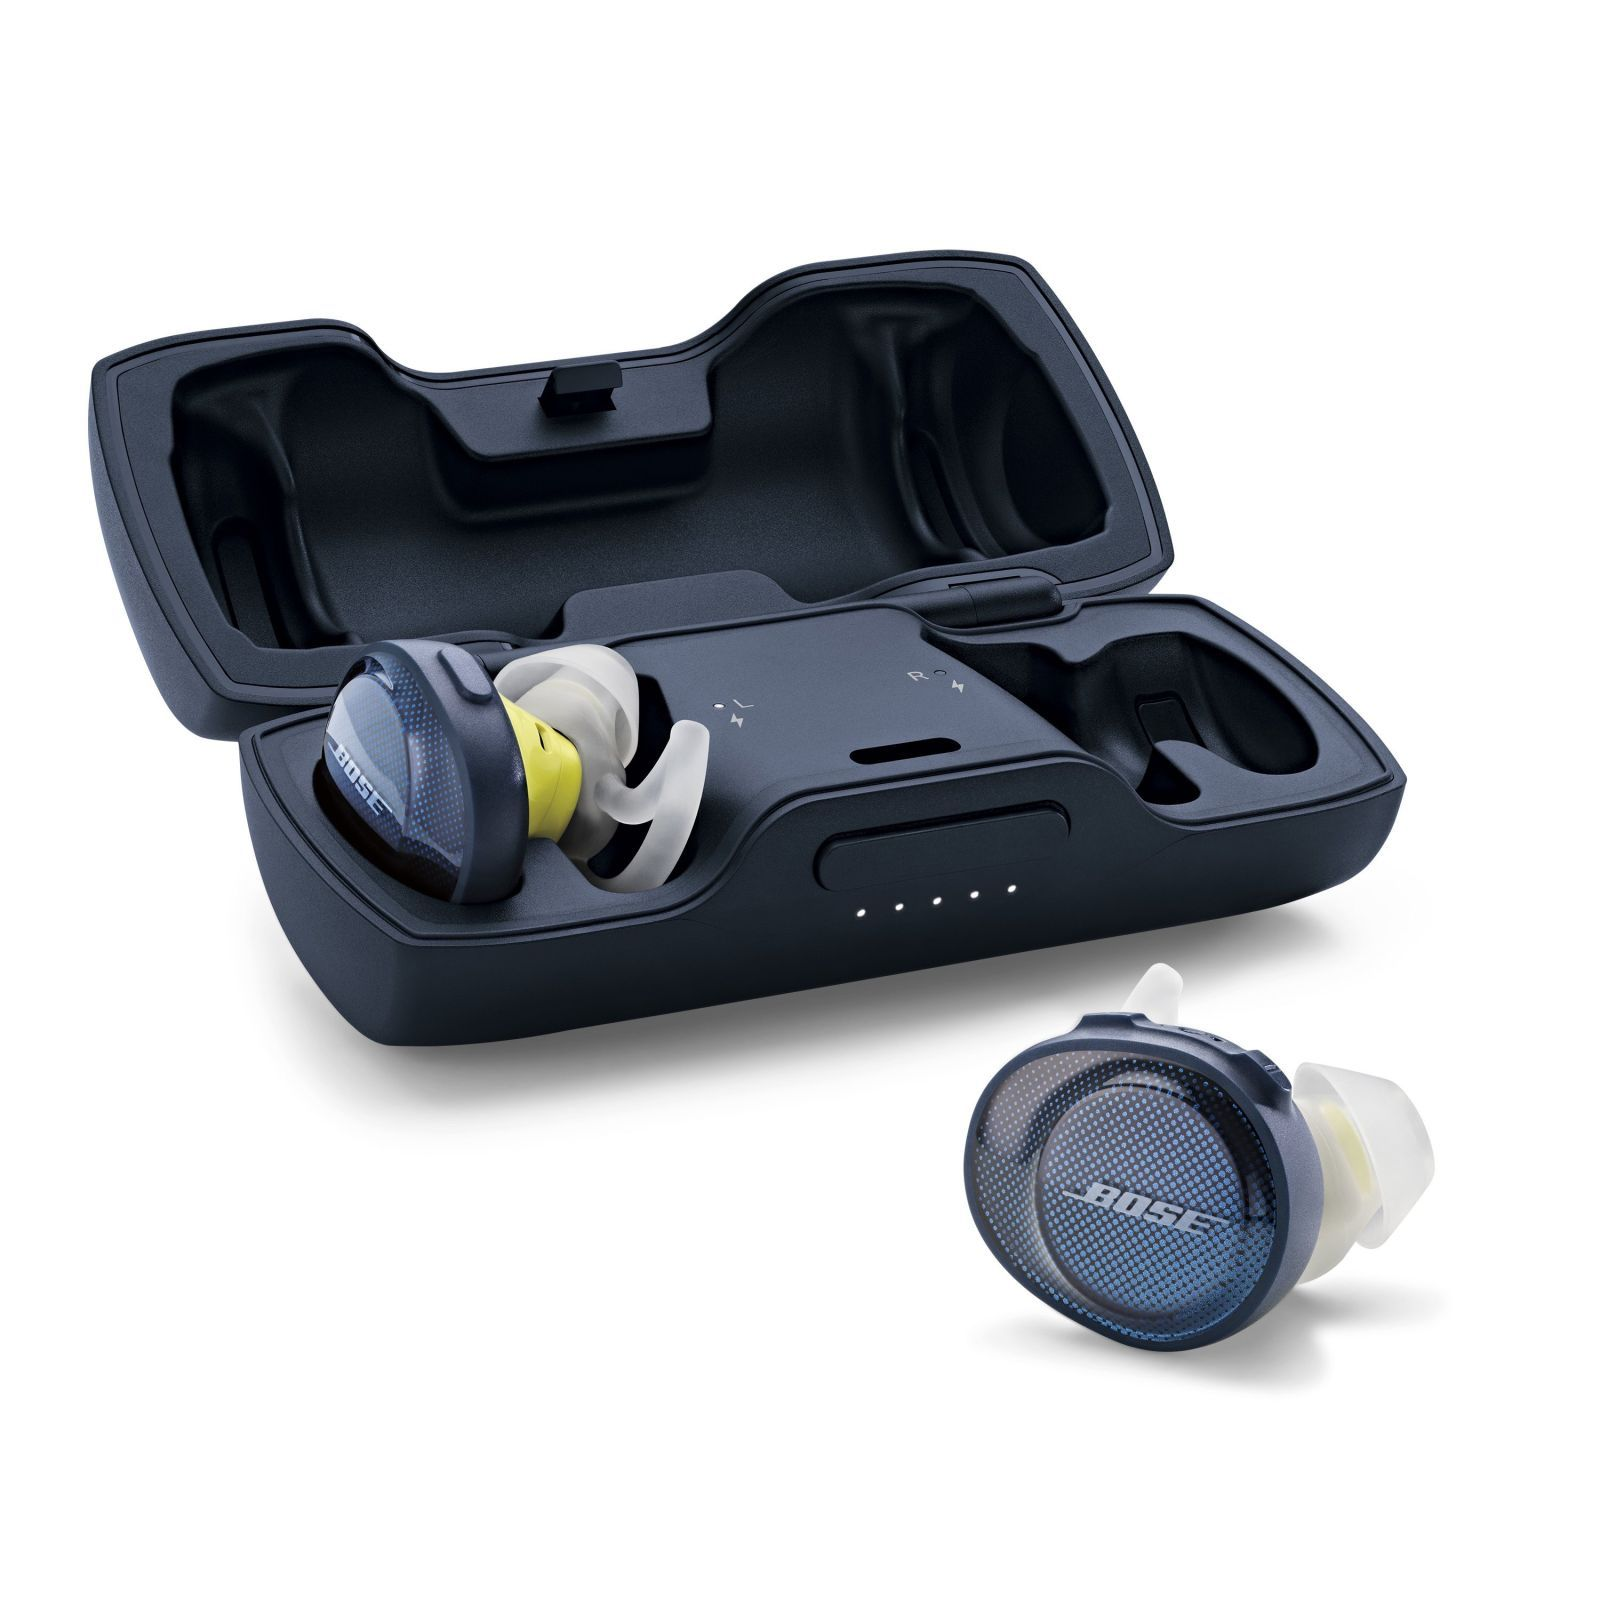 We Tested Wireless Earbuds for 300+ Hours — These are the